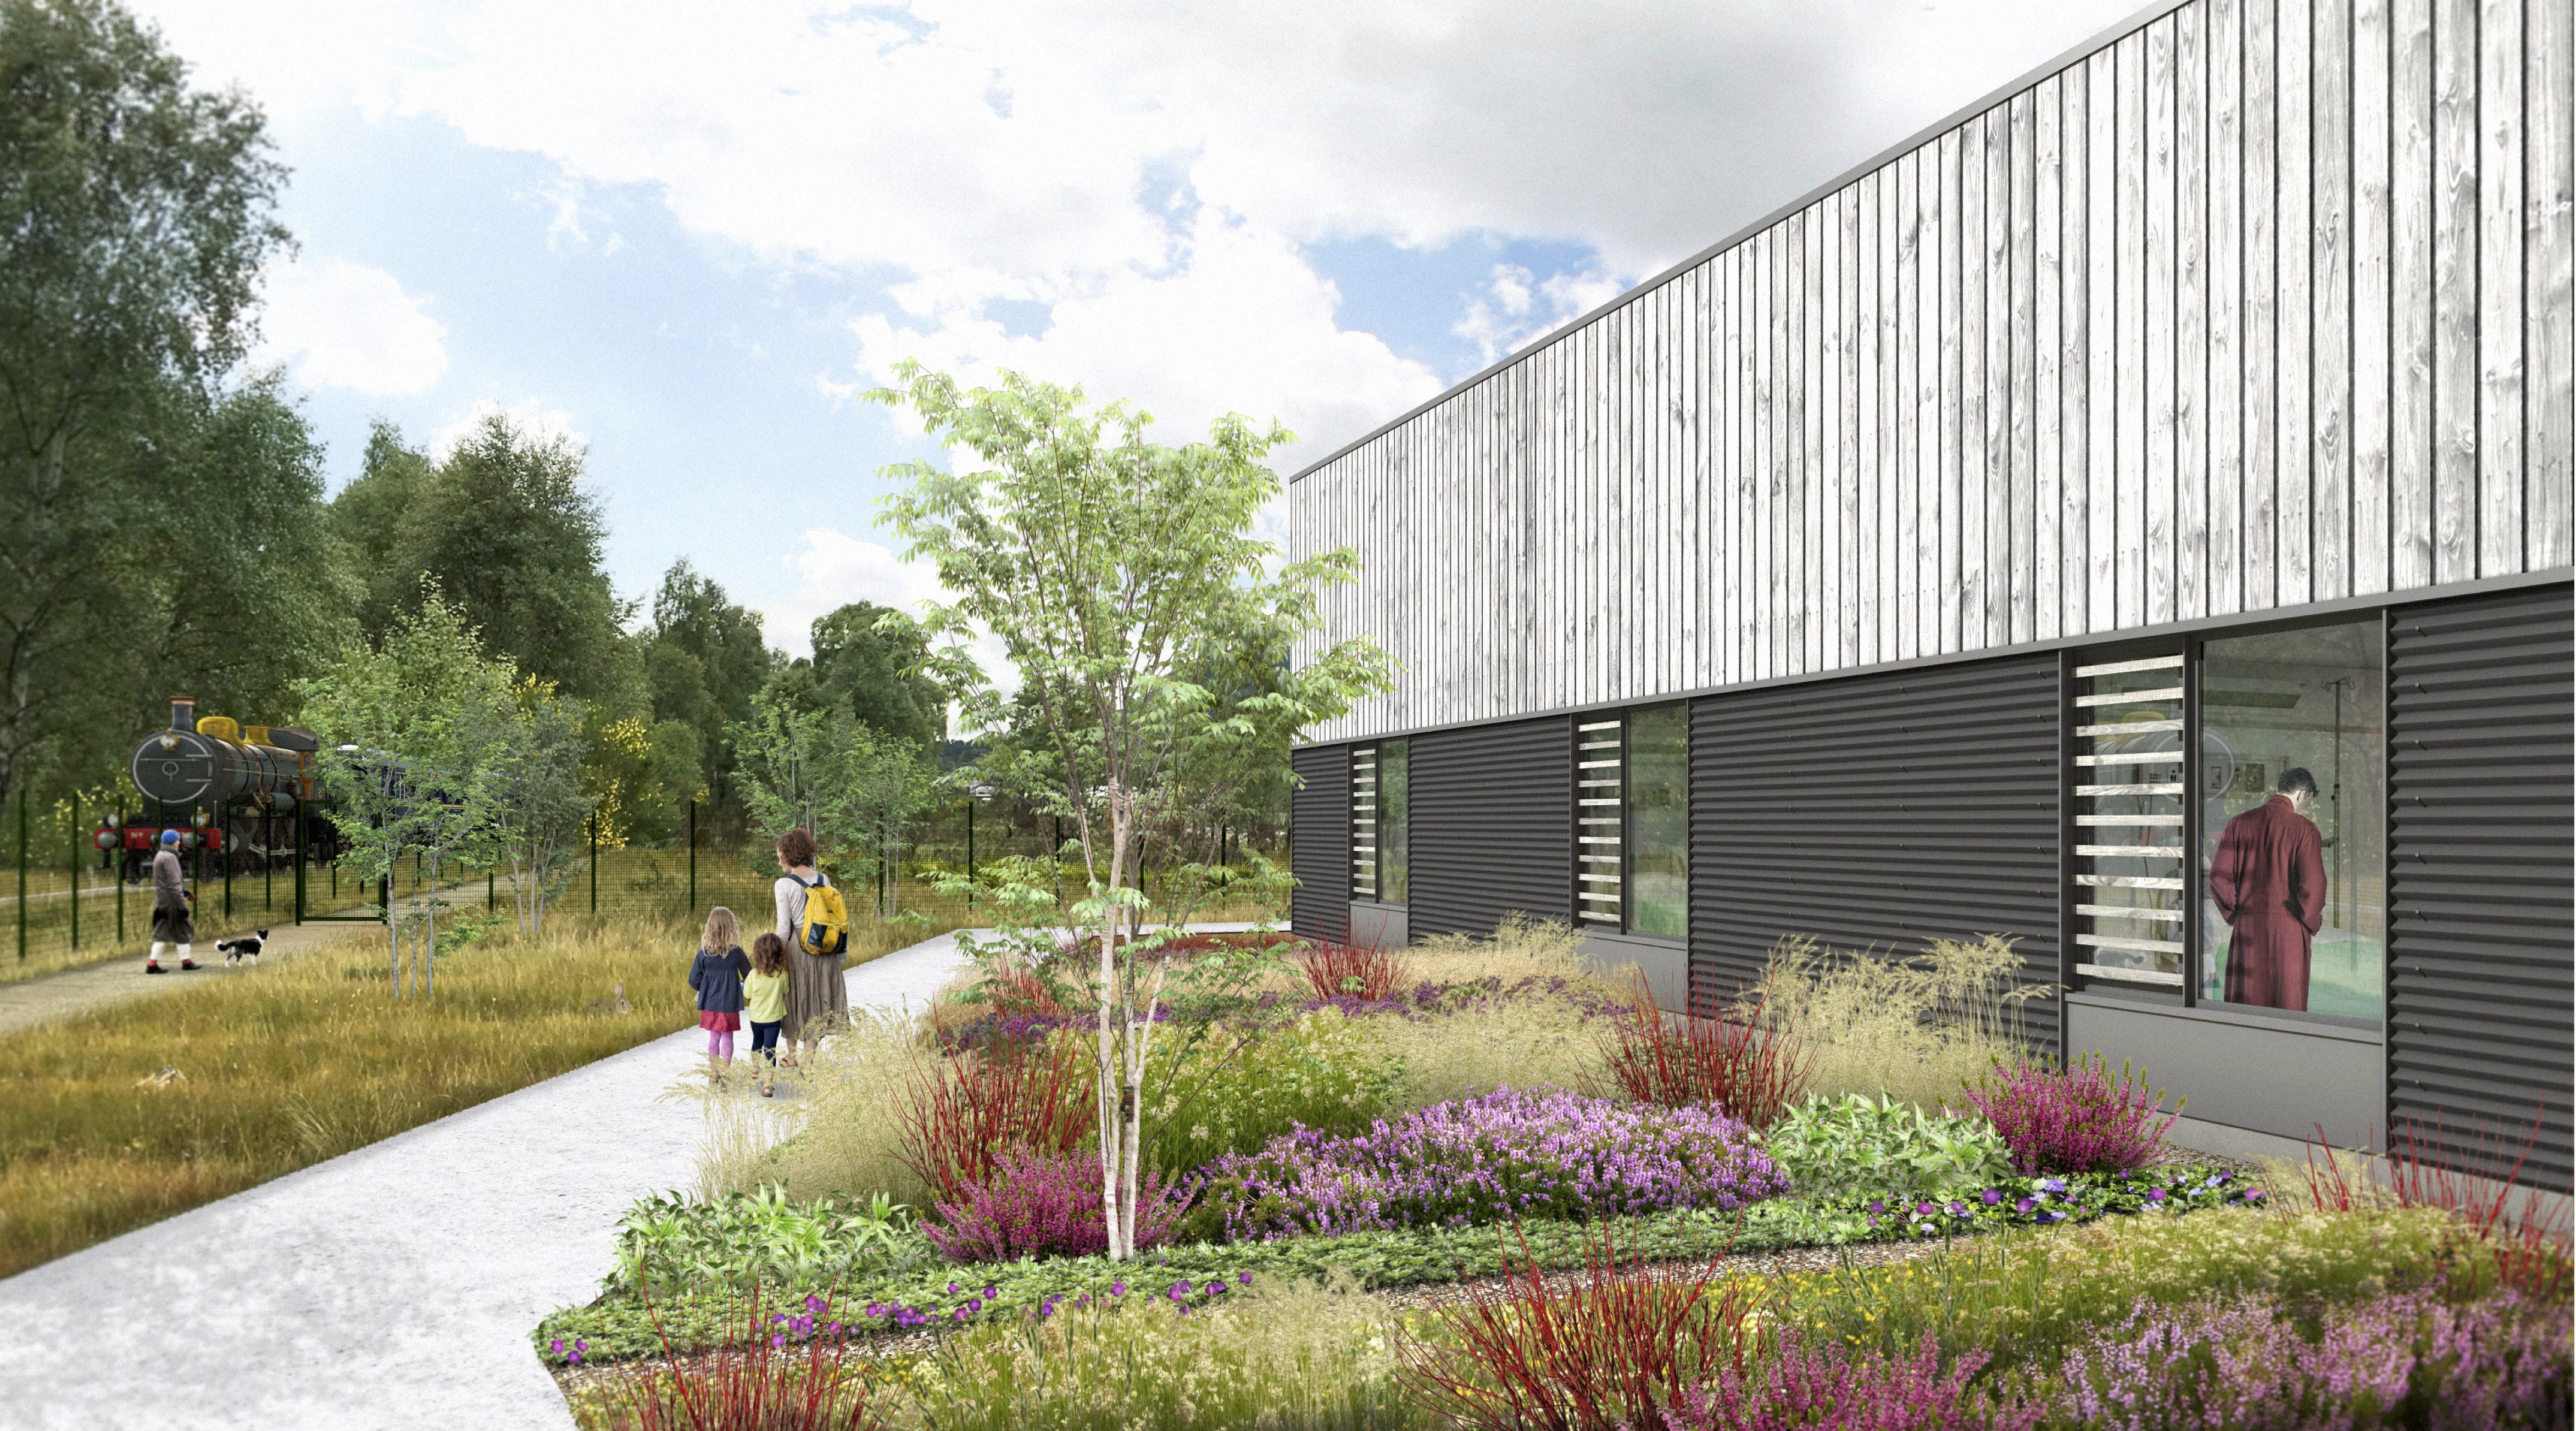 The new 24-bed hospital in Aviemore will bring together much of the areas health services, including housing the Scottish Ambulance Service and the Aviemore Medical Practice